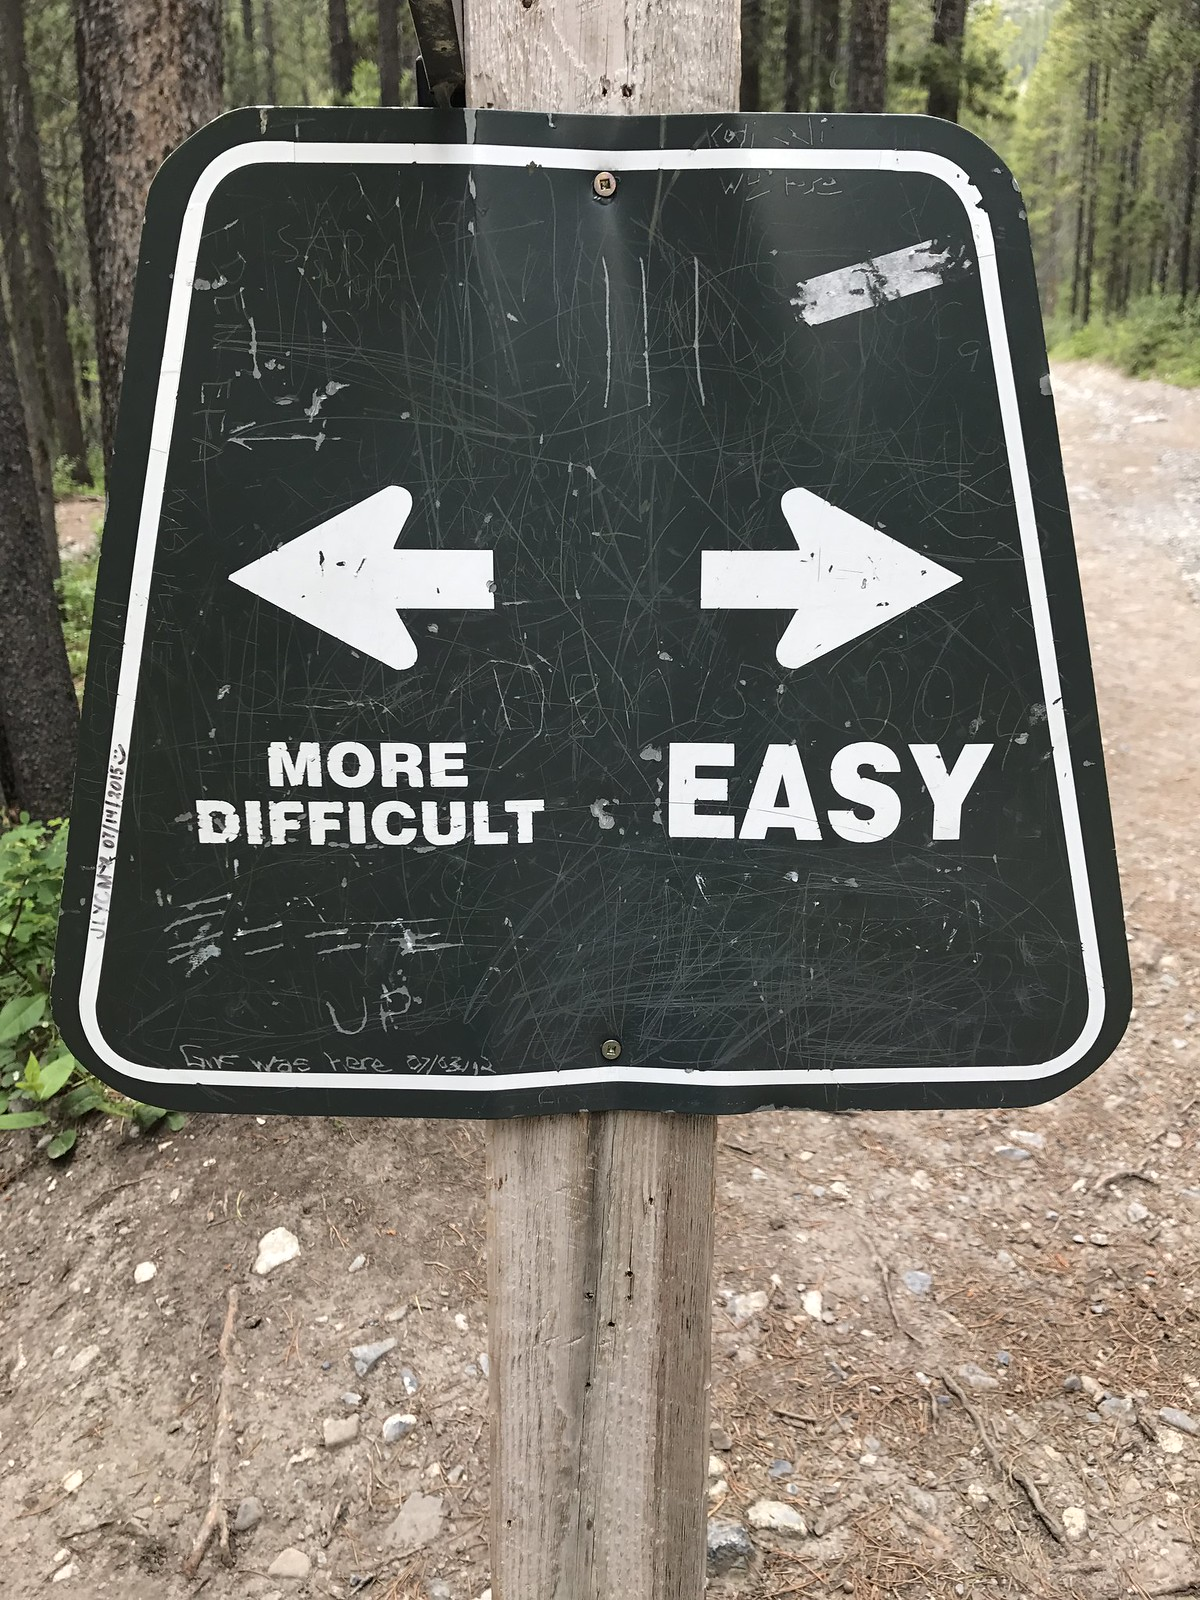 Grassi Lakes trail more difficult or easy trails